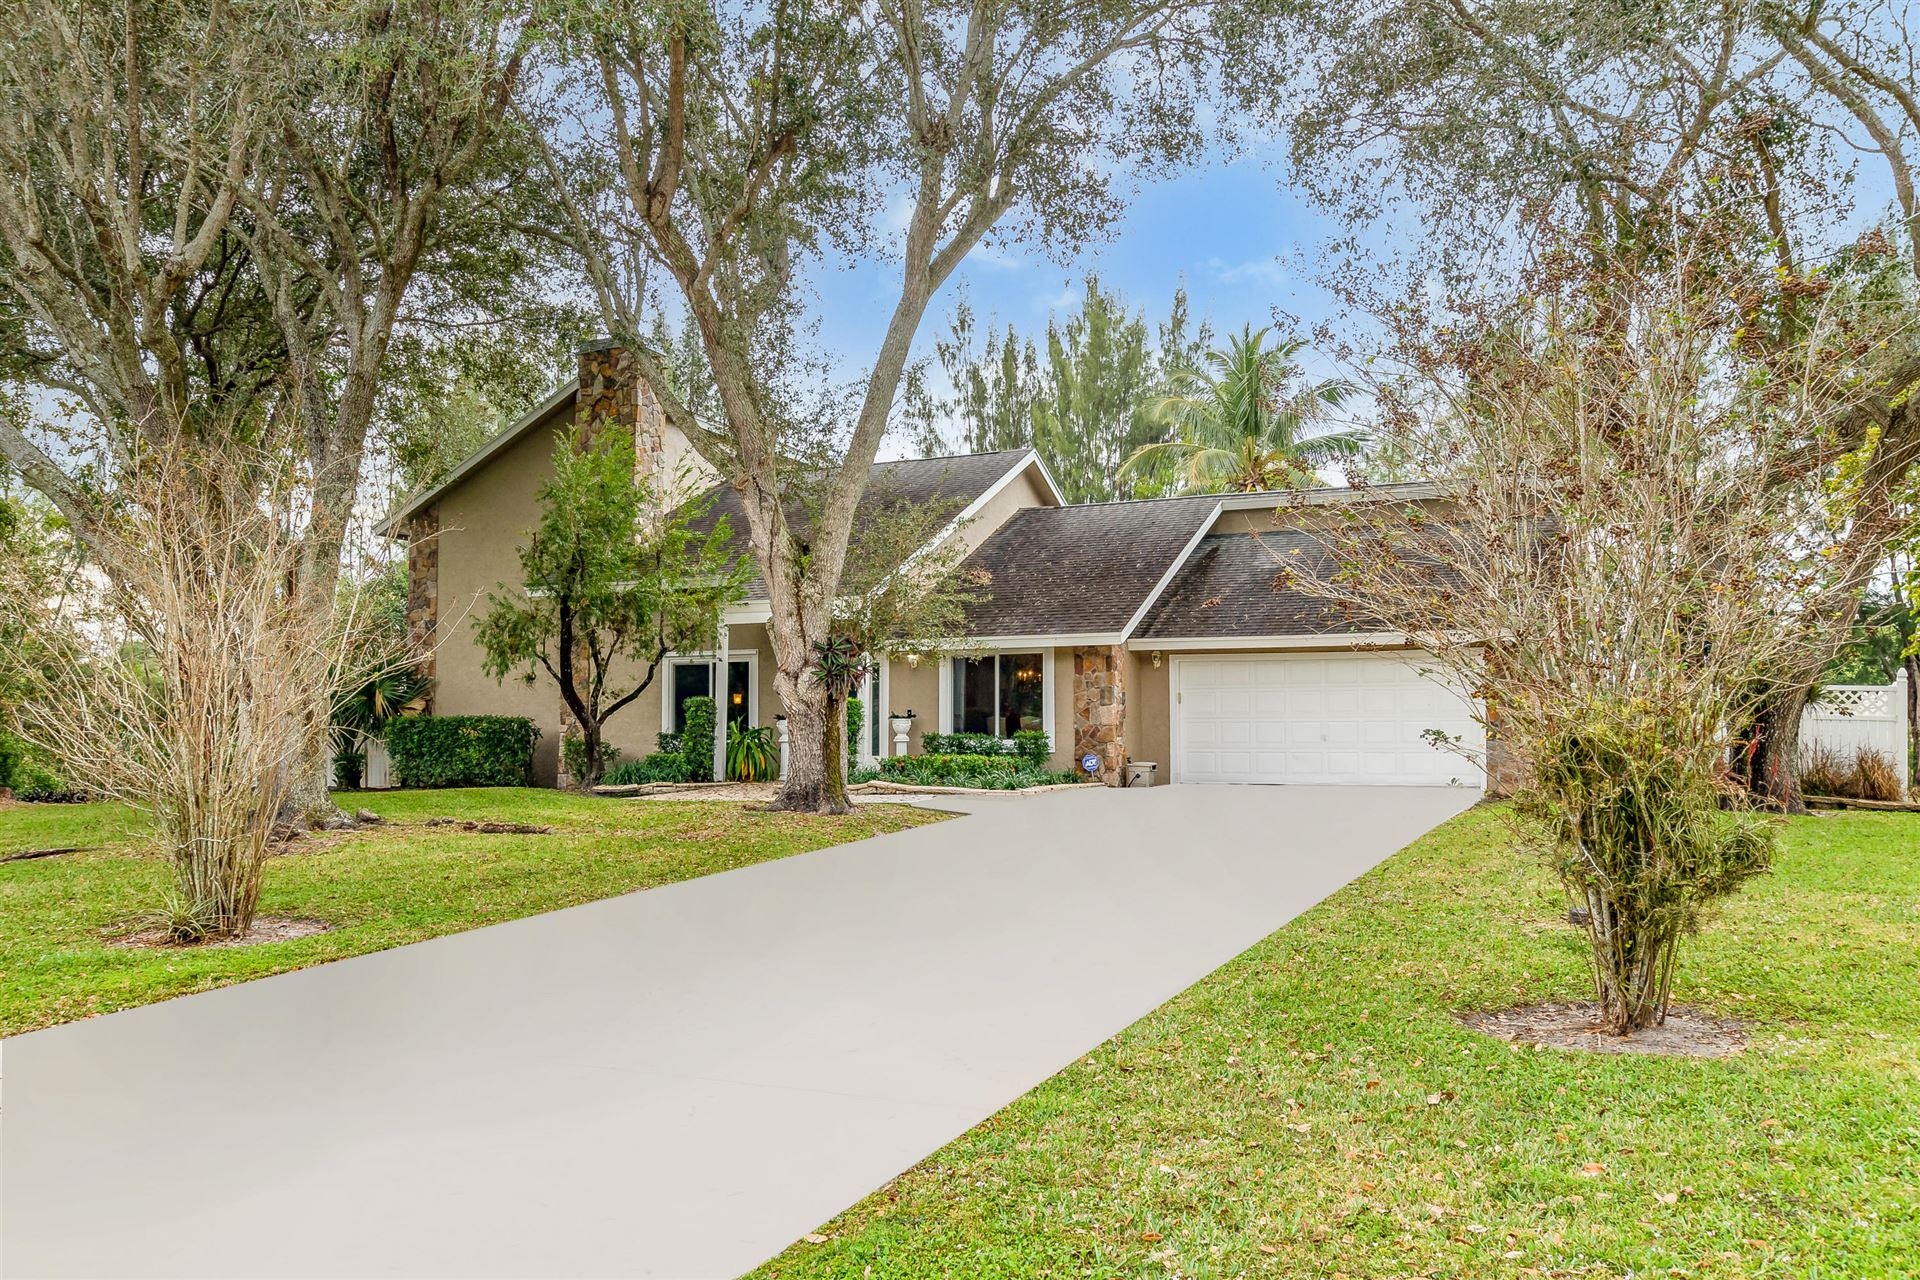 965 Whippoorwill Row, West Palm Beach, FL 33411 - #: RX-10685954